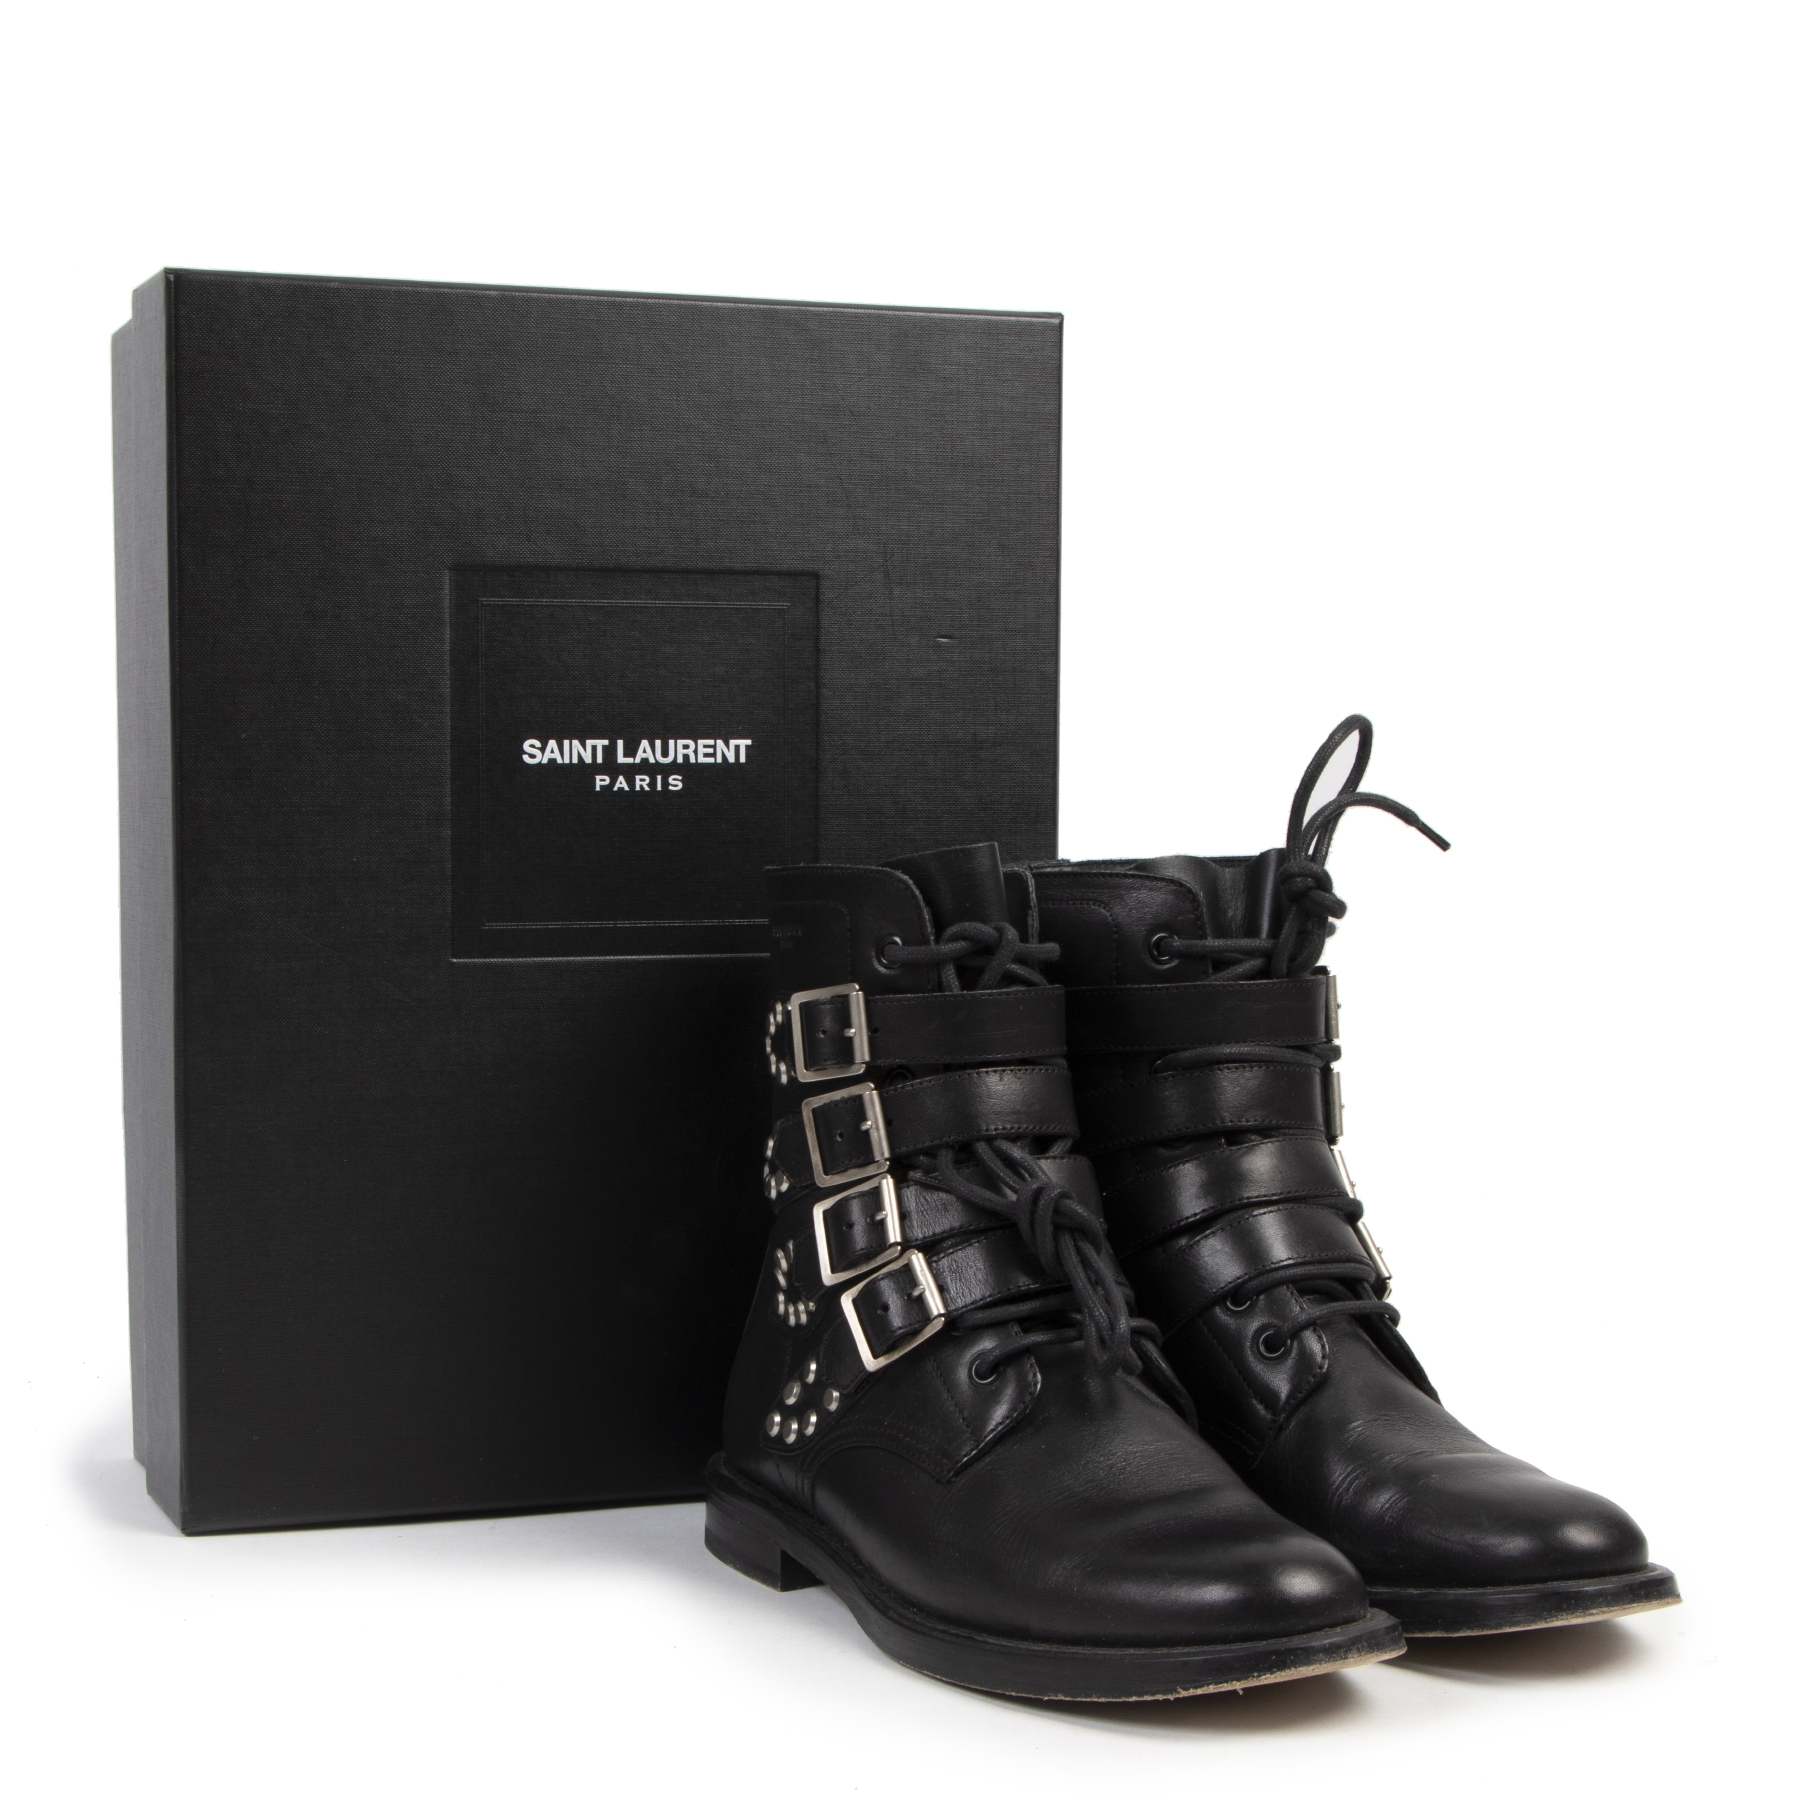 Authentique seconde-main vintage Yves Saint Laurent Black Leather Biker Boots - Size 39 achète en ligne webshop LabelLOV